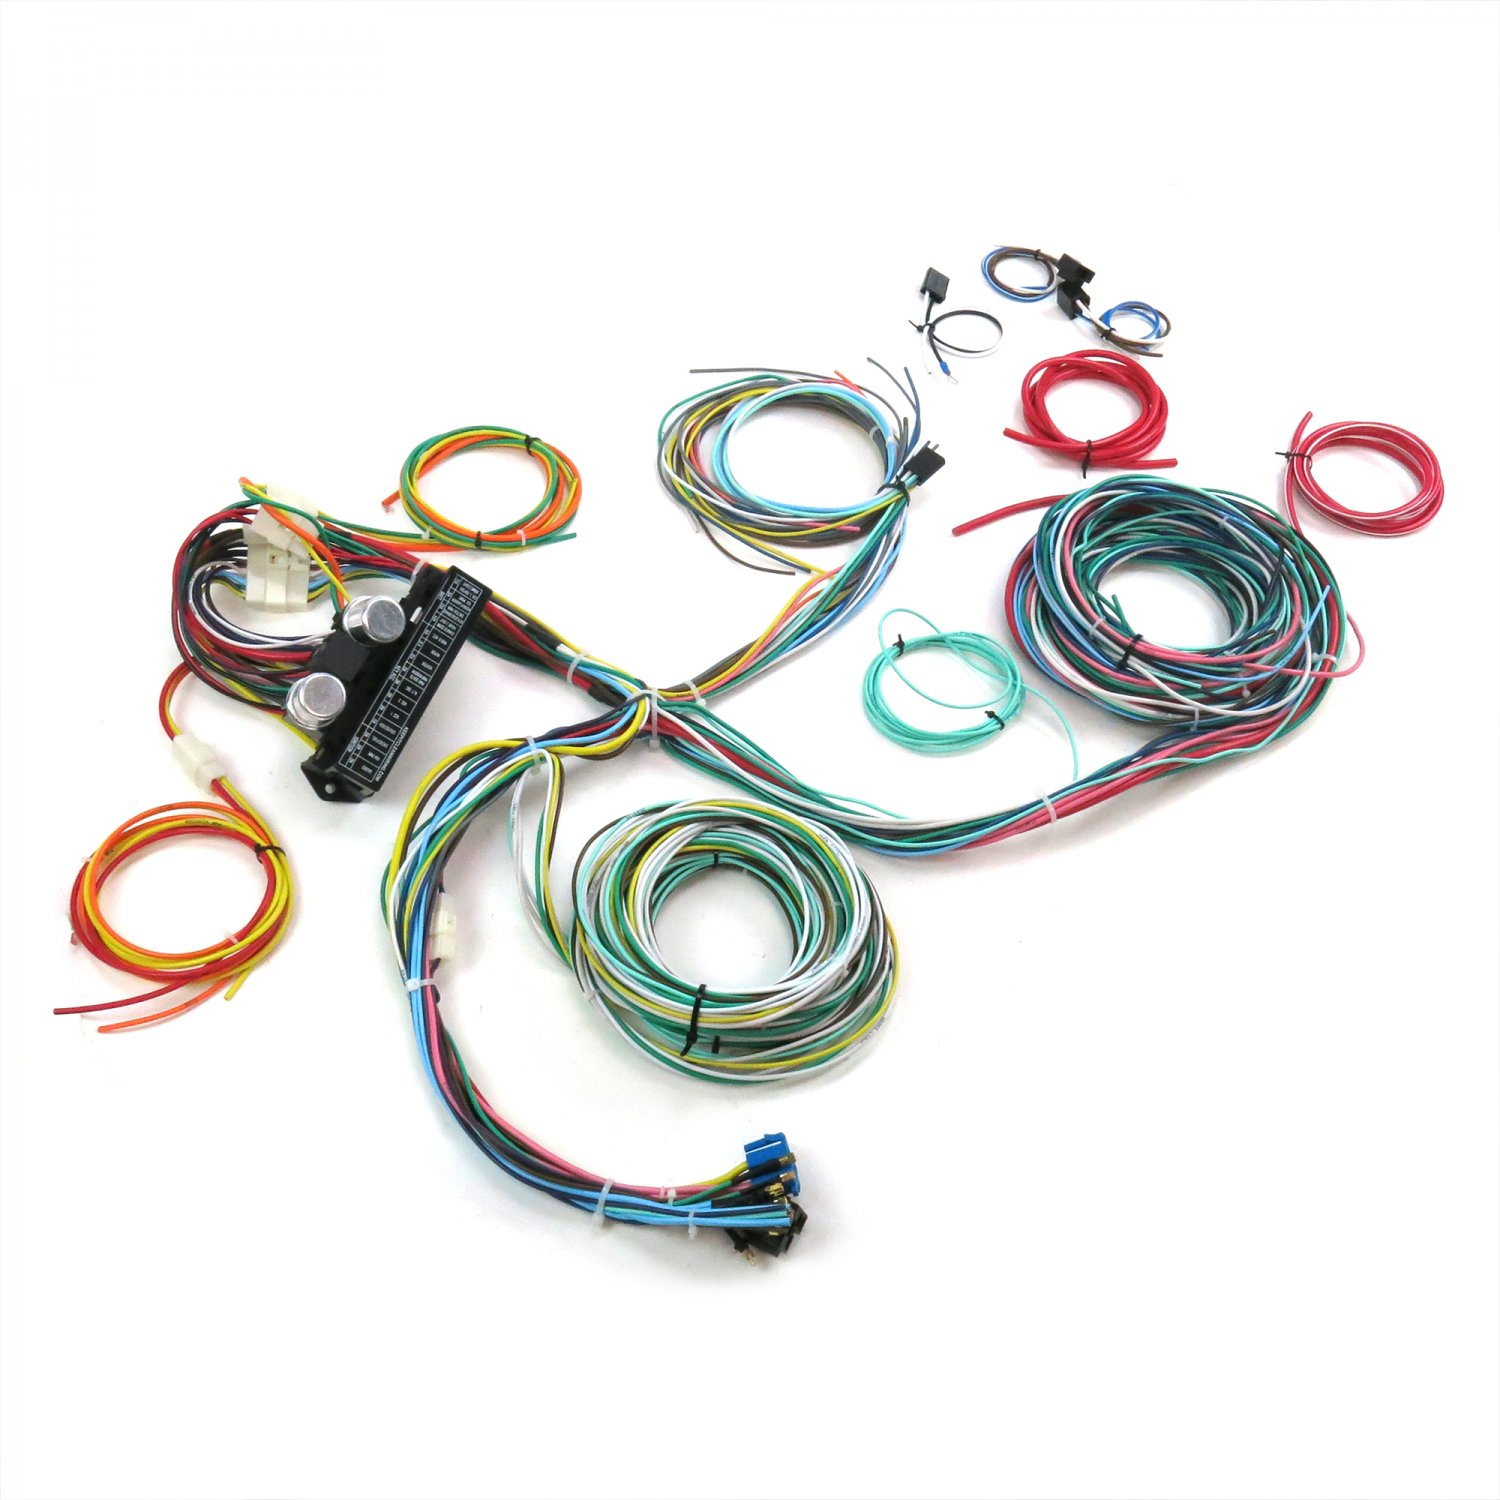 ultimate 15 fuse 12v conversion 39 wiring harness 40 1940. Black Bedroom Furniture Sets. Home Design Ideas